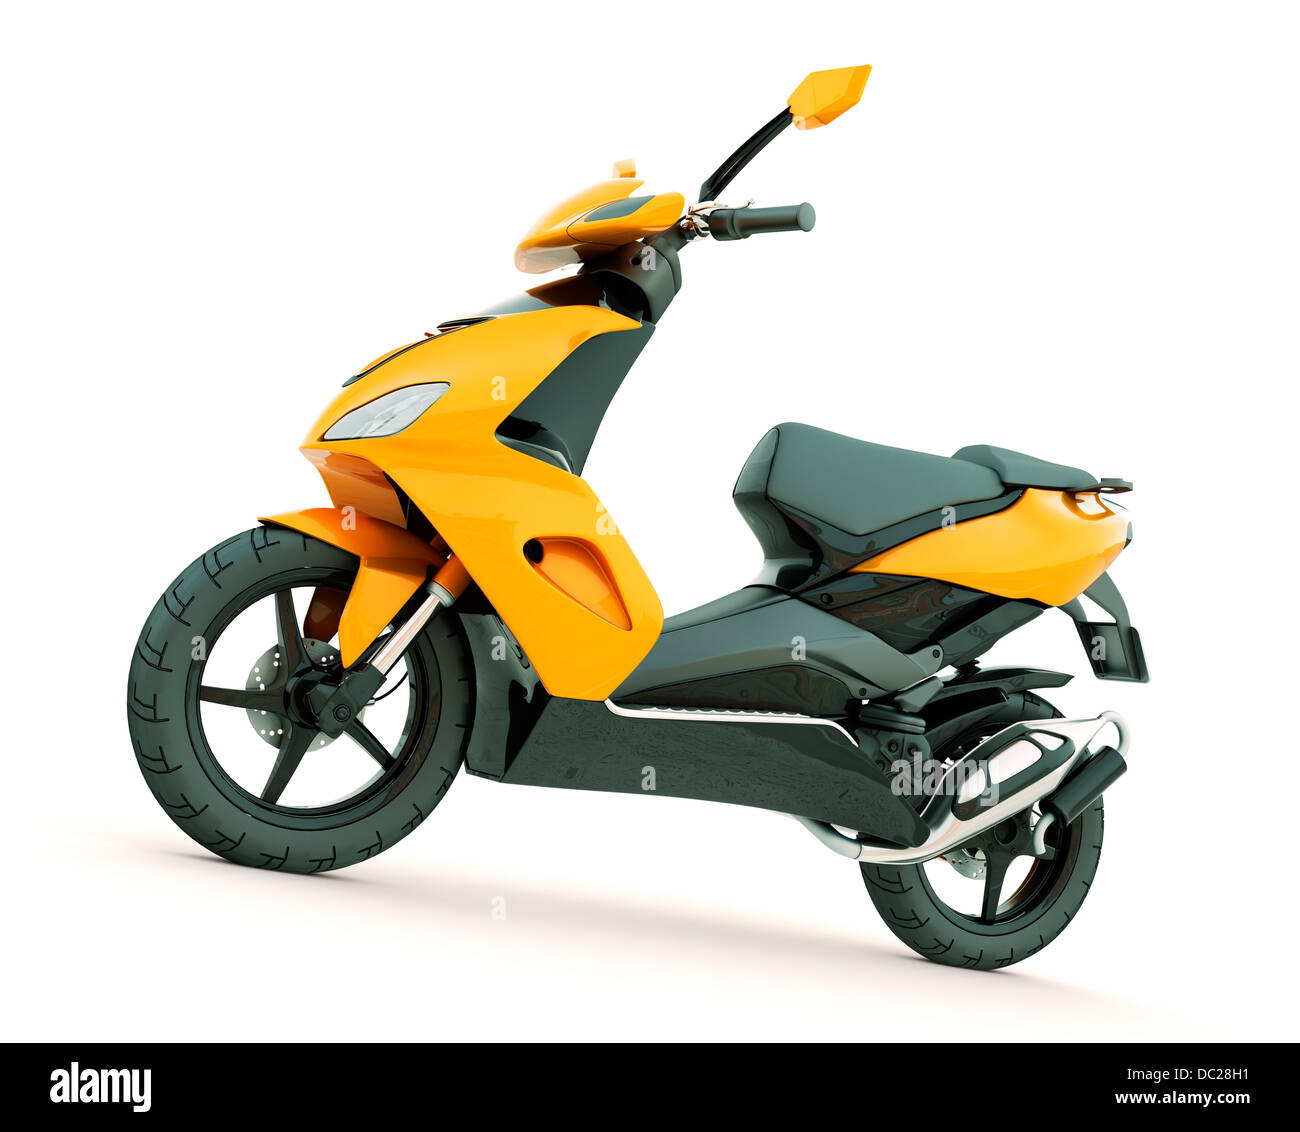 Modern powerful sports scooter on a light background - Stock Image